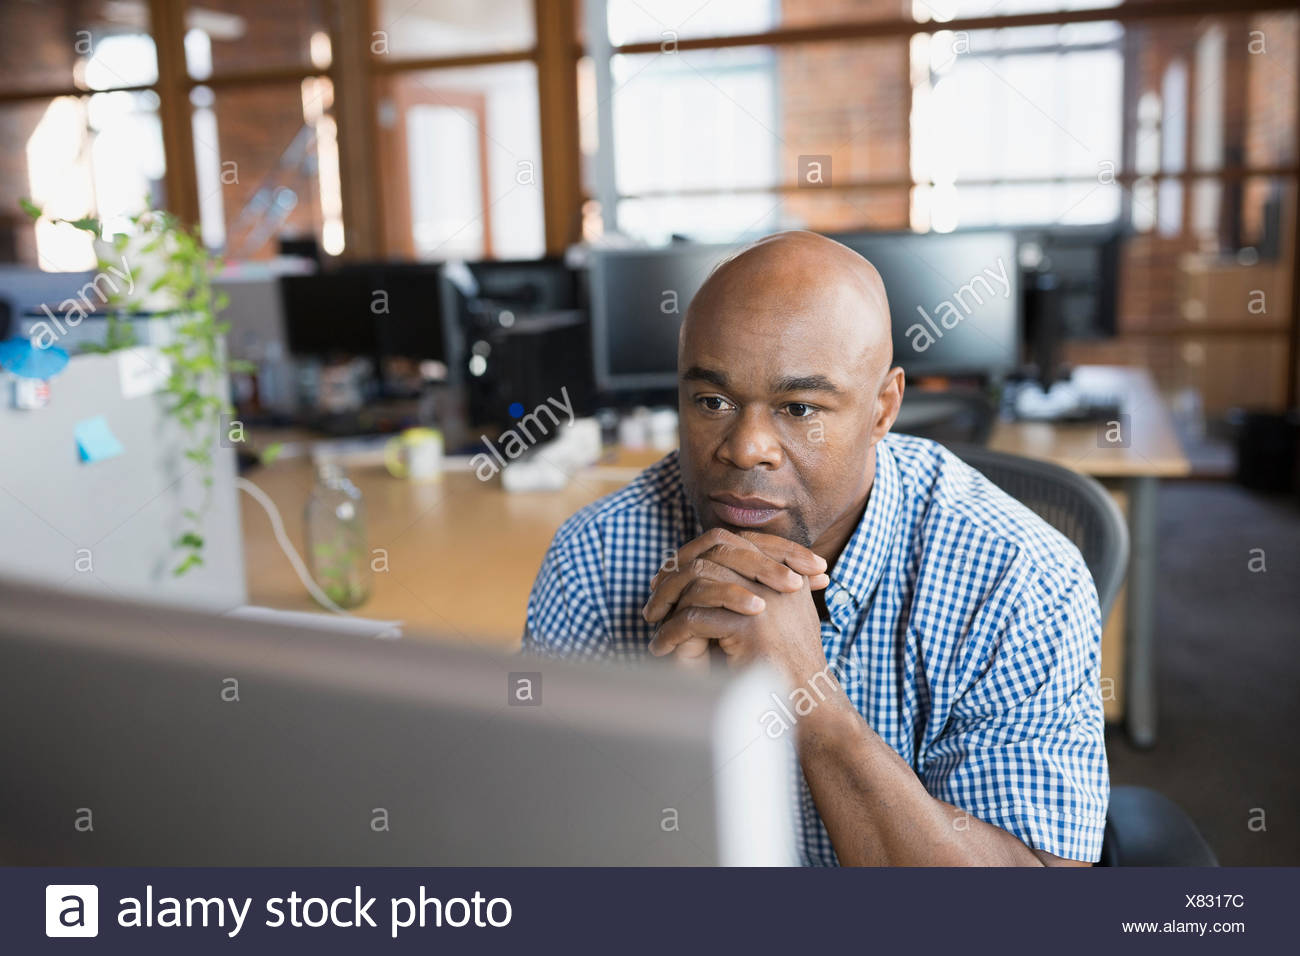 Serious businessman working at computer in office - Stock Image